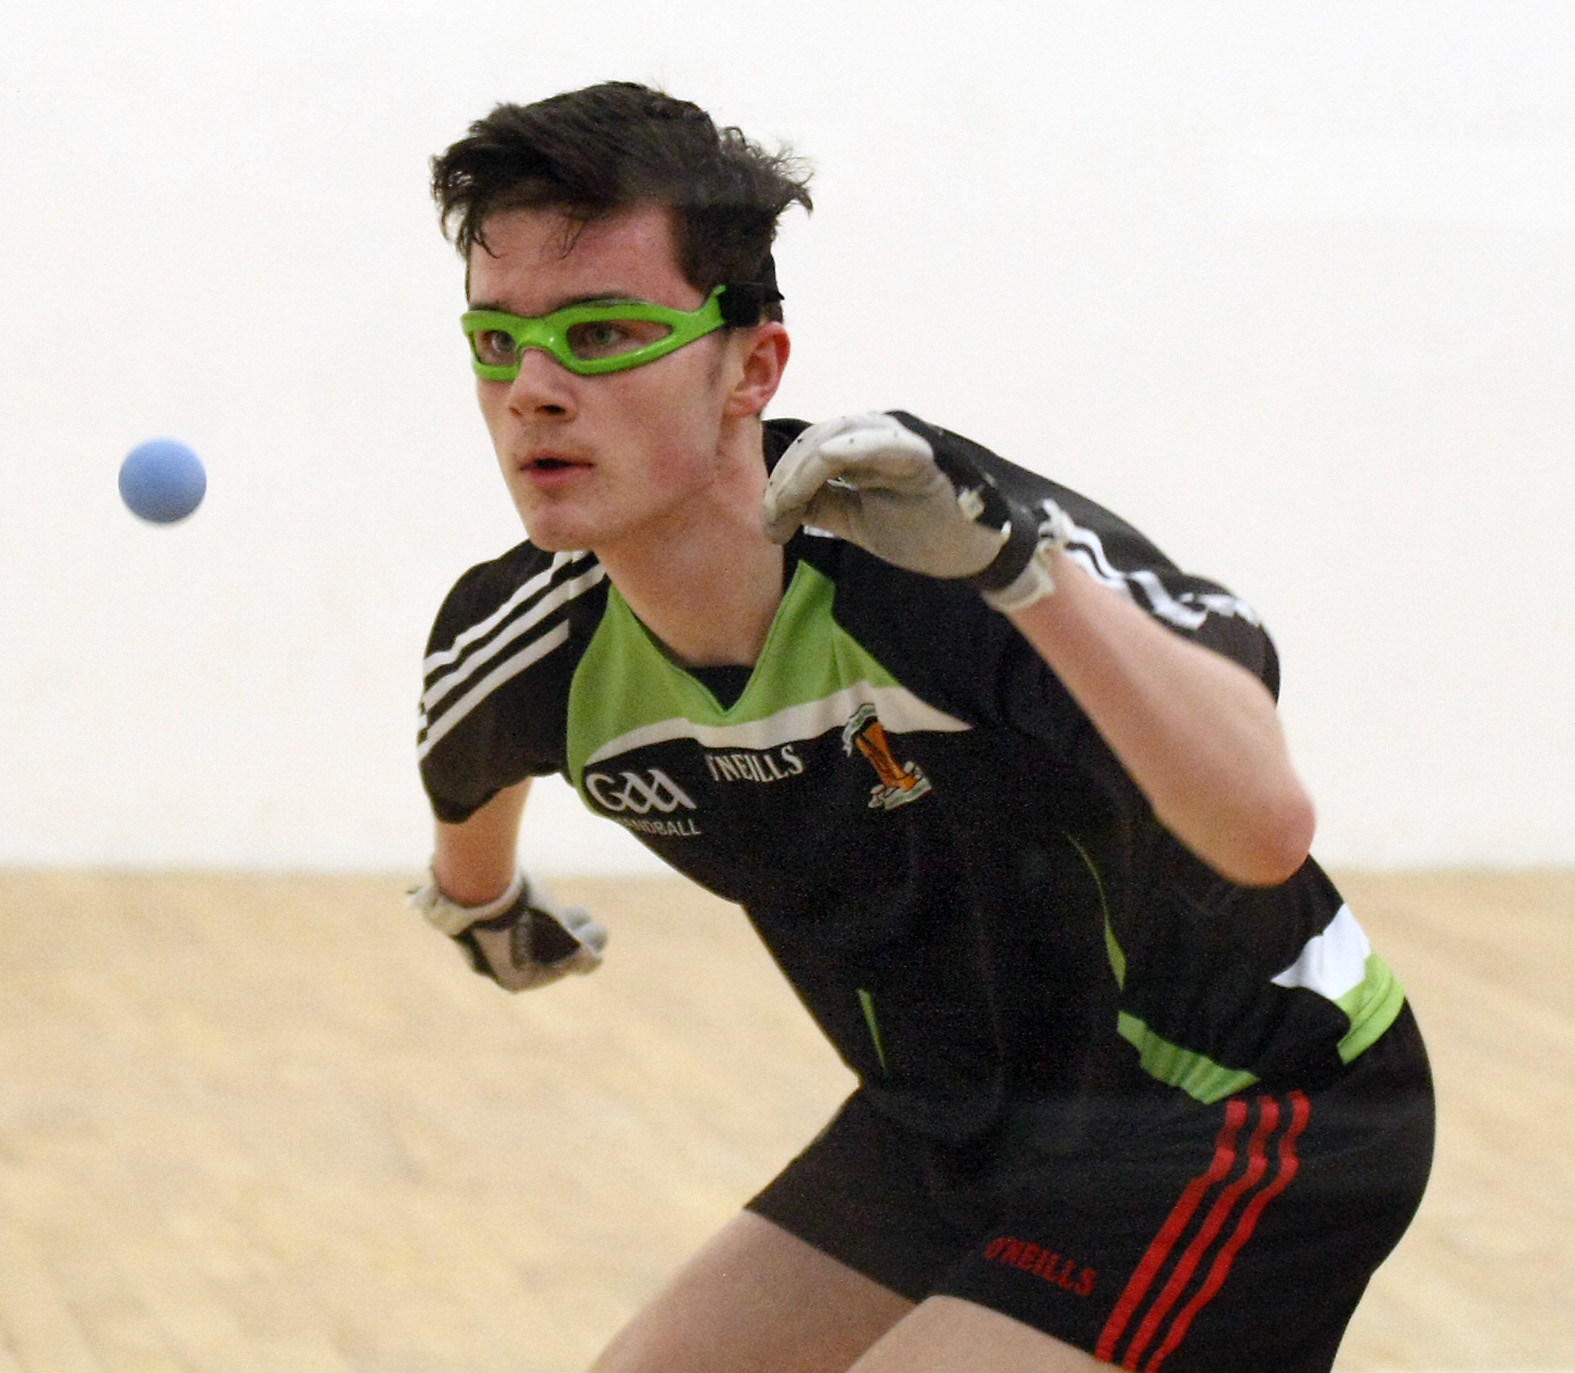 Massive weekend of Tyrone GAA Handball Juvenile Finals action with Senior semis on the way